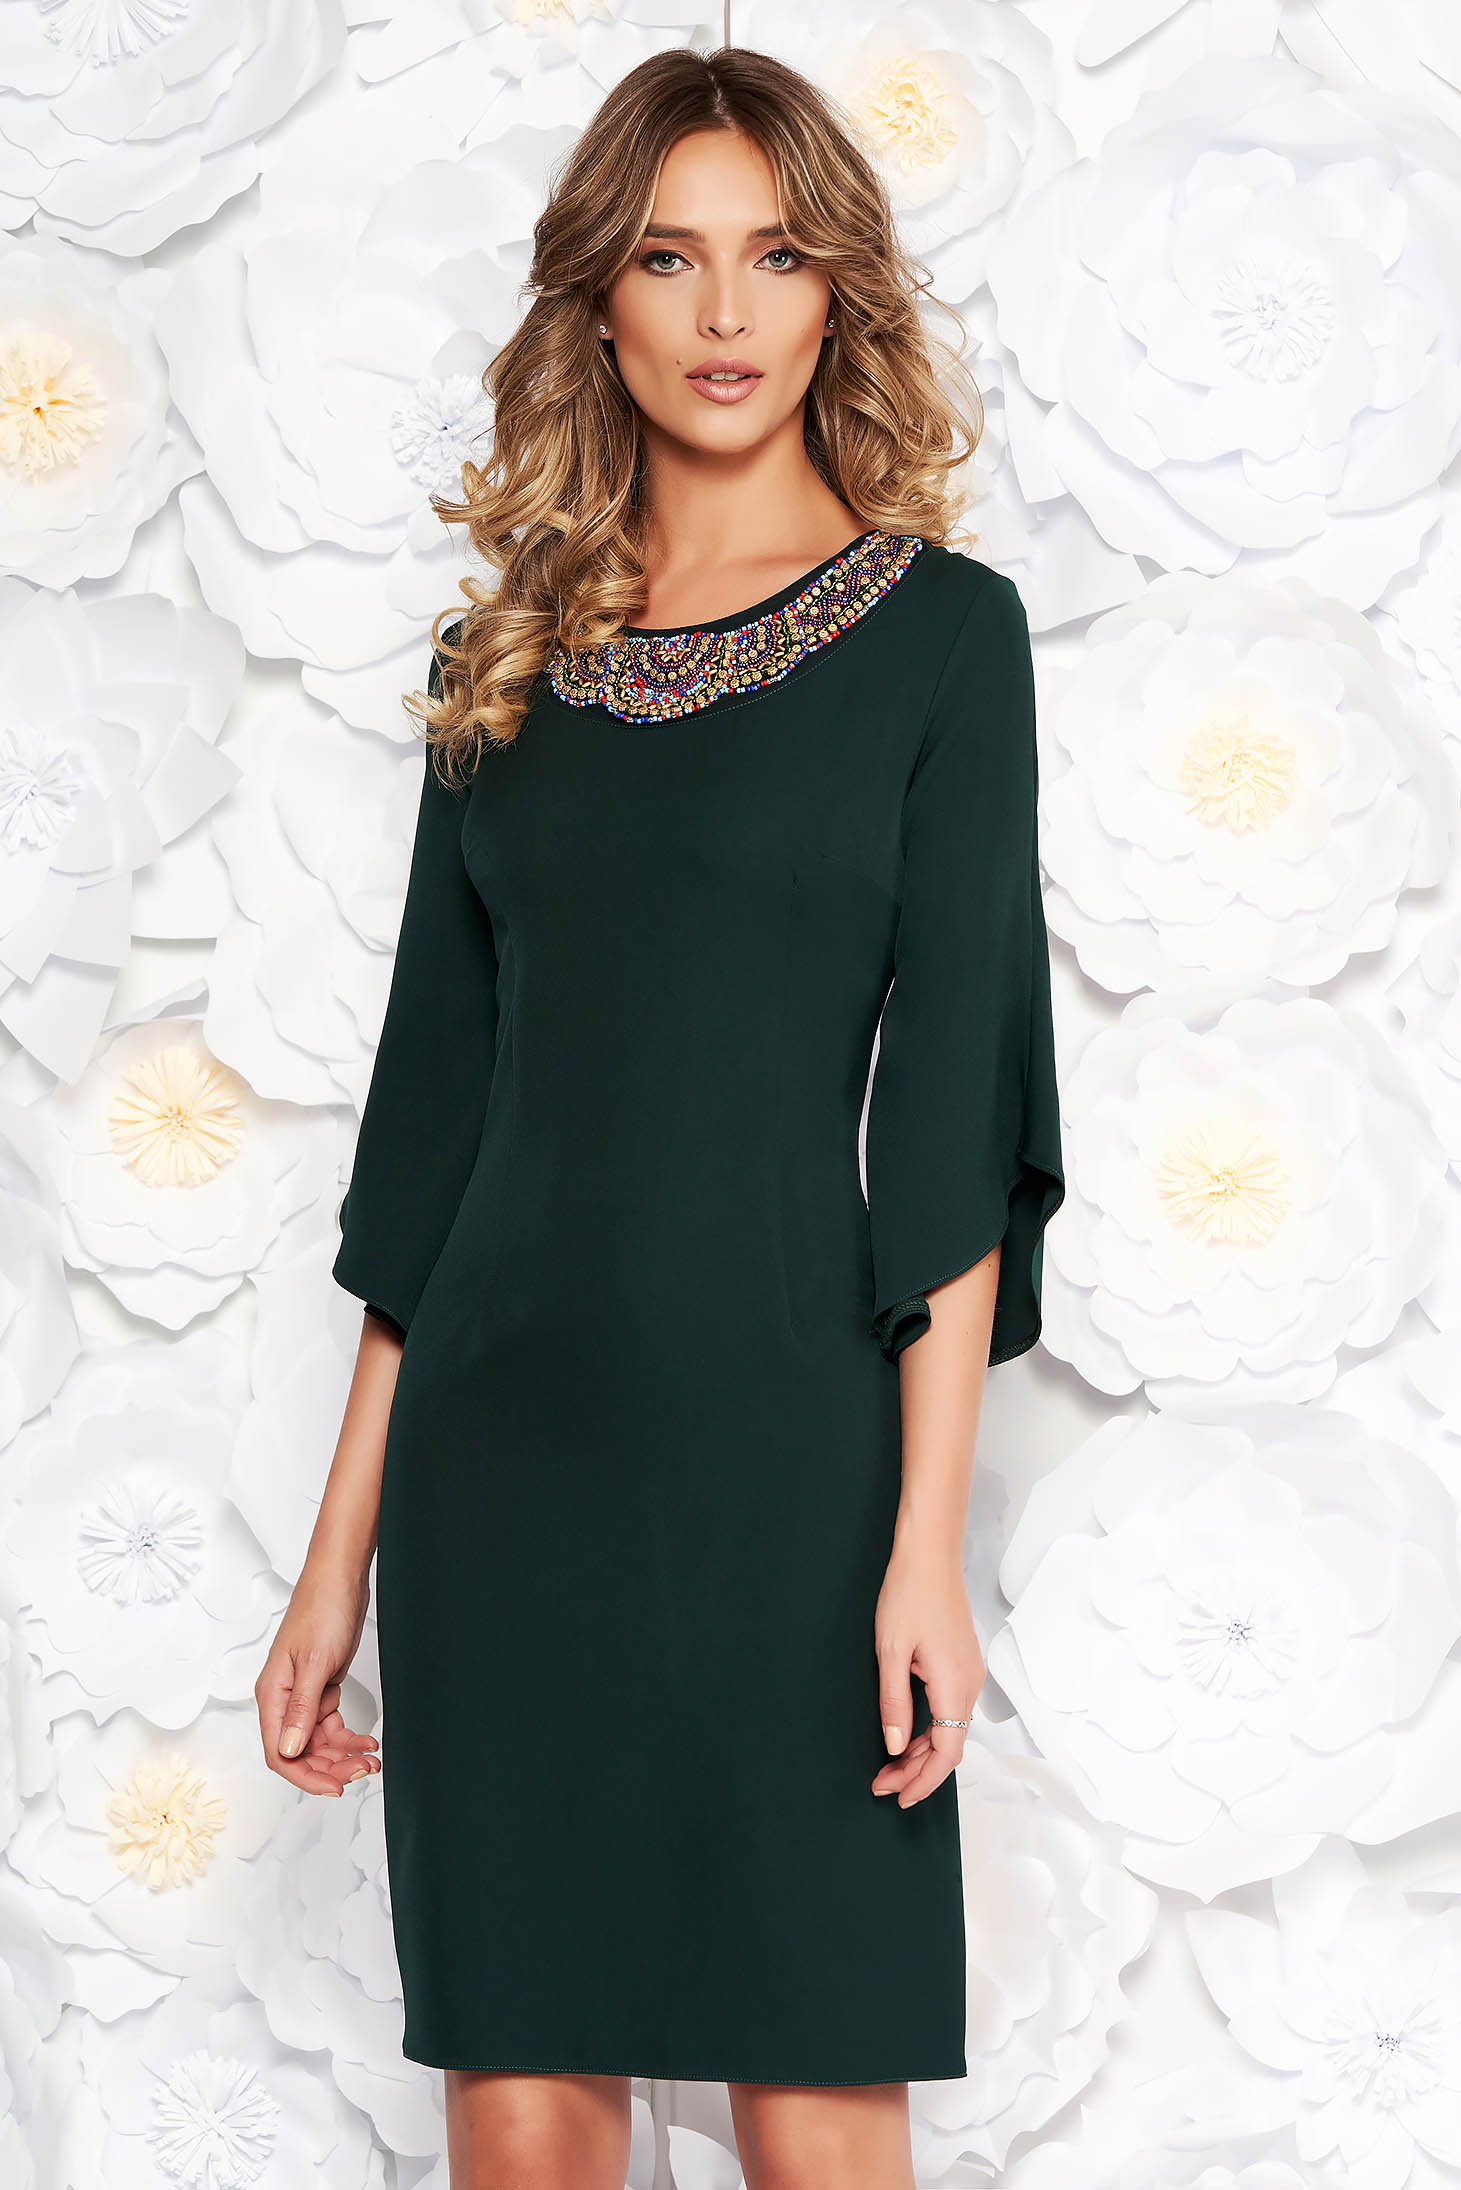 Darkgreen elegant pencil dress slightly elastic fabric with 3/4 sleeves with small beads embellished details